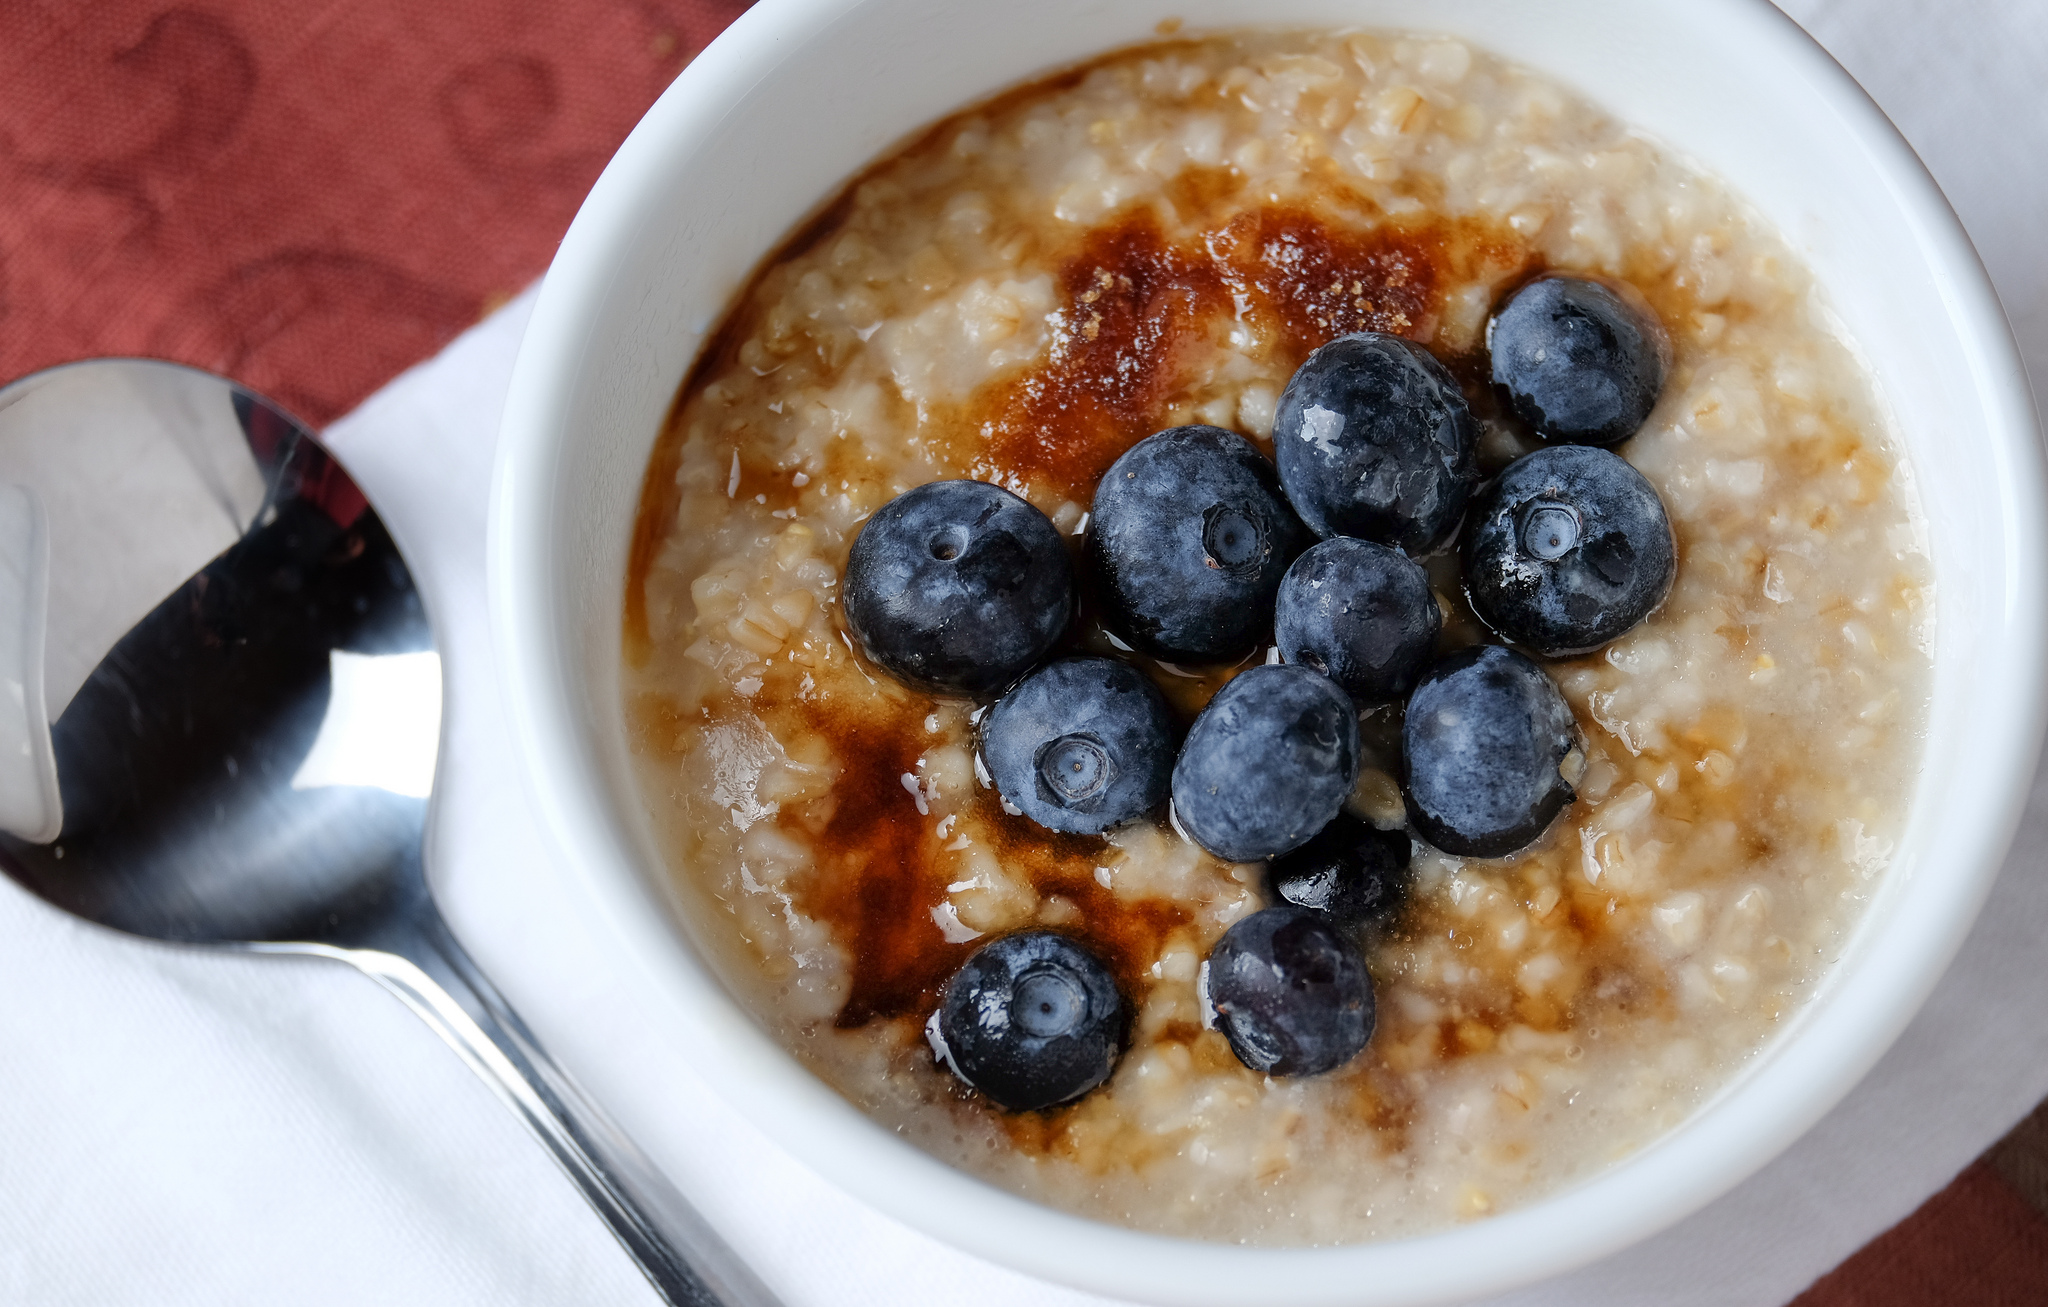 Eat Your Way to Healthier Hormones With These 5 Foods